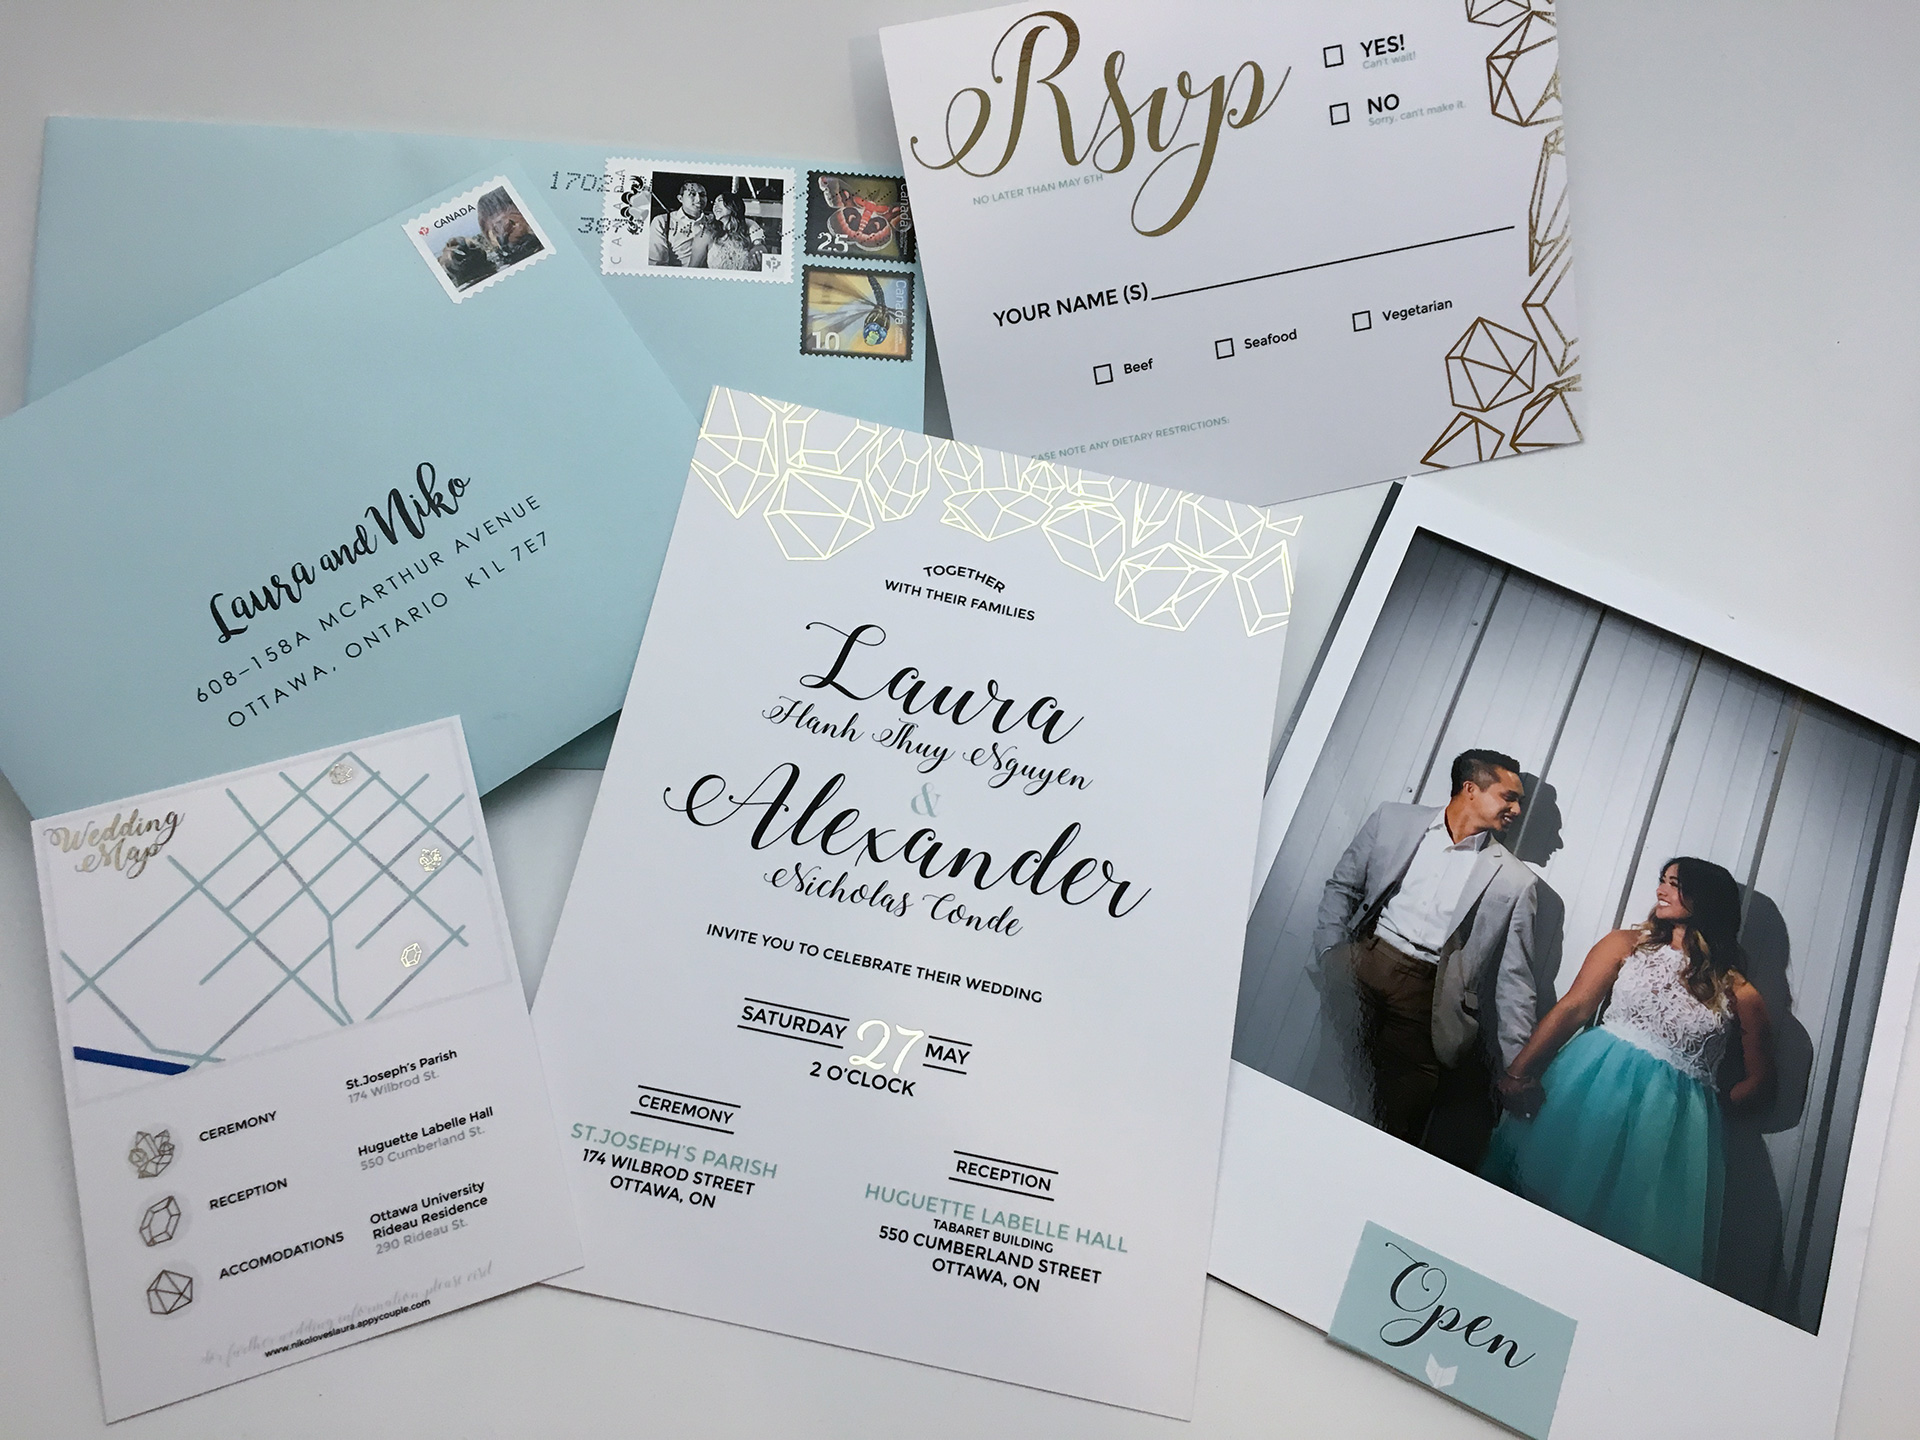 I had the opportunity to design wedding invitations for a personal client which included invitation cards, map cards, and the RSVP cards.